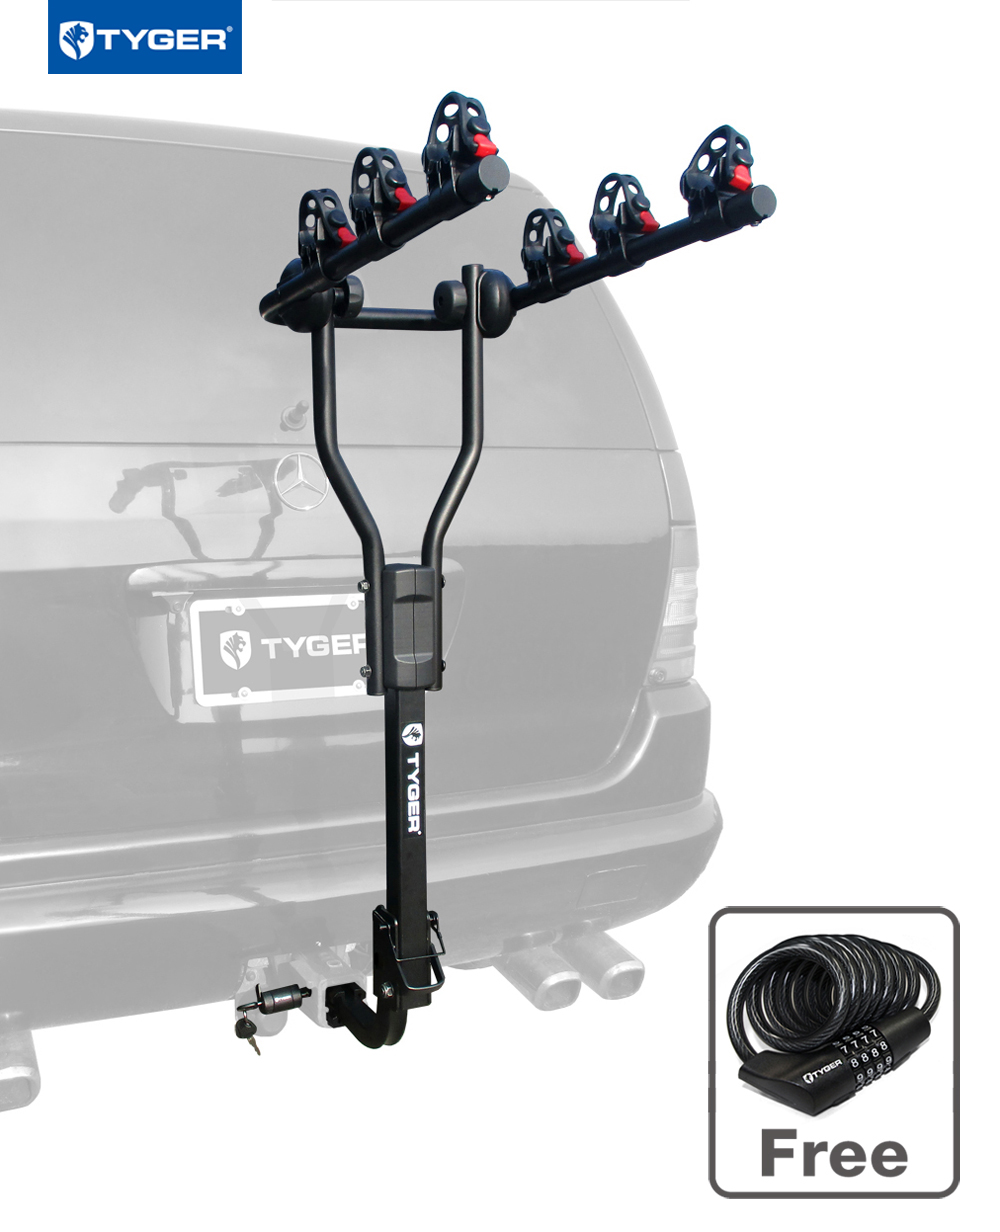 "Tyger Auto TG-RK3B101S 3-Bike Hitch Mount Bicycle Carrier Rack | Free Hitch Lock & Cable Lock | Fits both 1.25"" and... by"